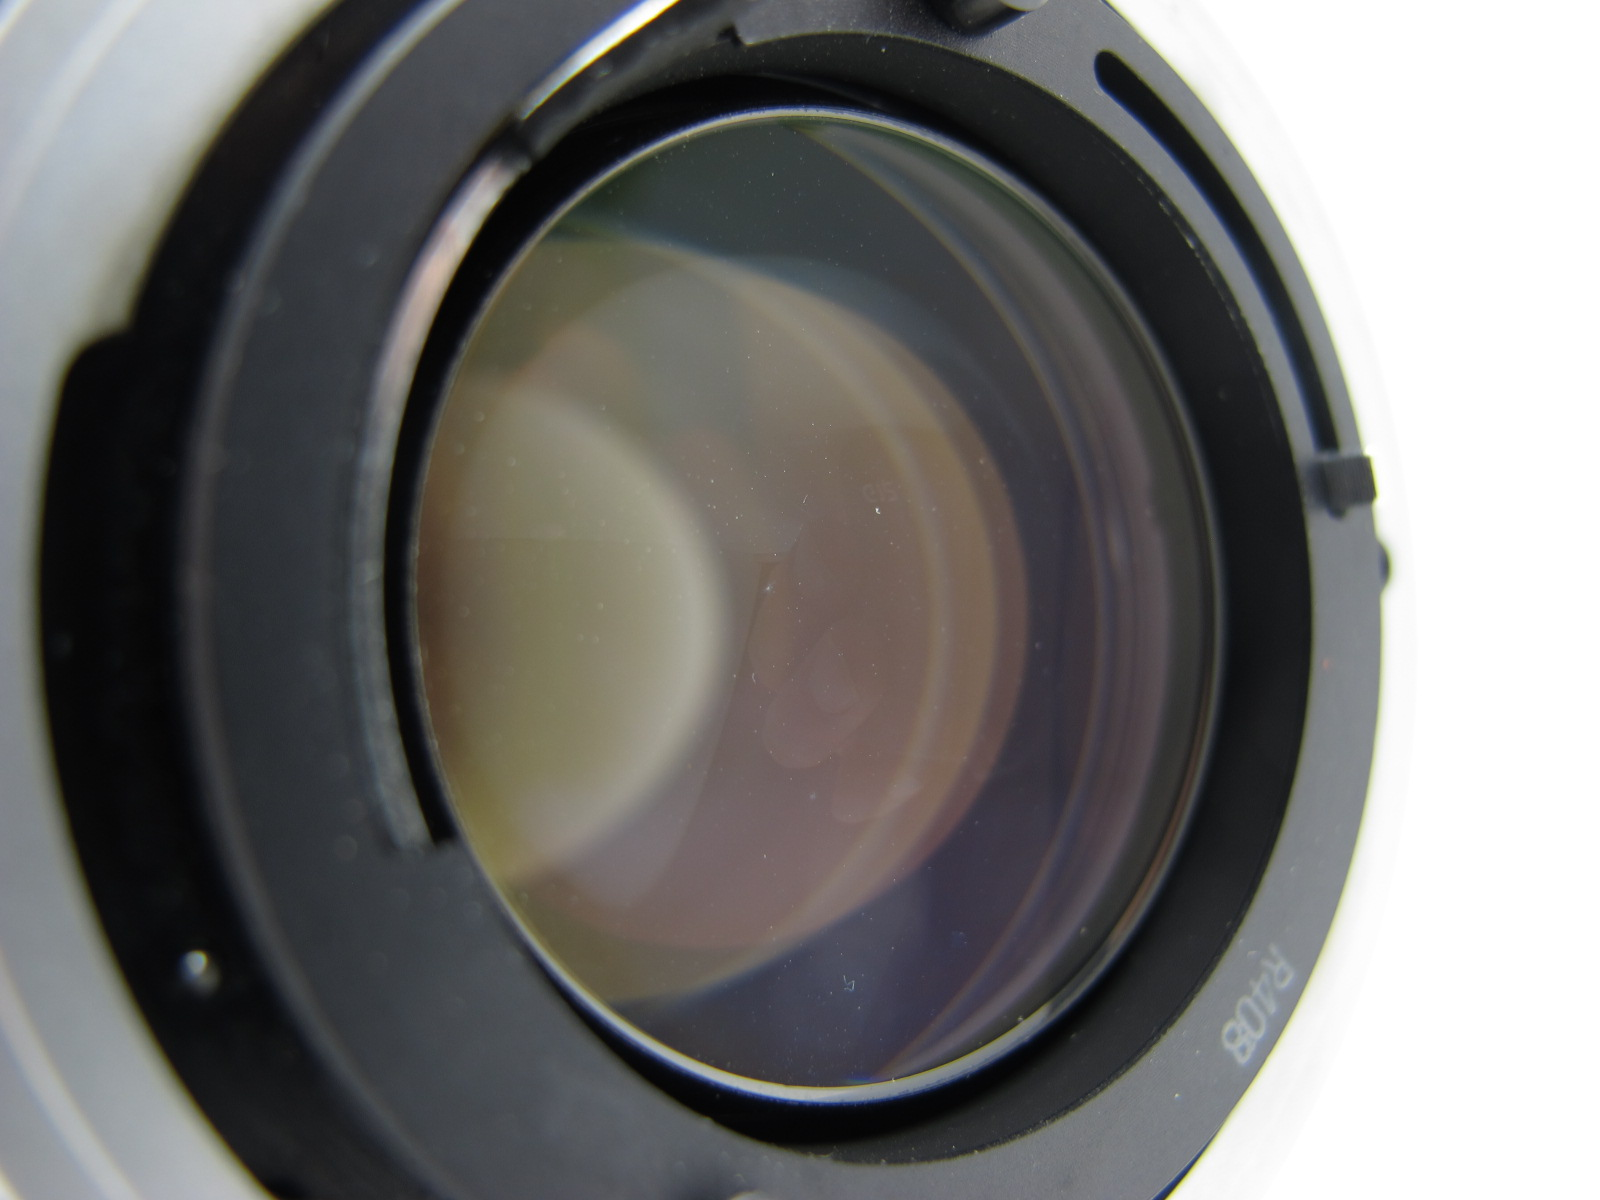 Canon Lens, FD 55mm 1:12 S.S.C. lens, in canvas case. - Image 4 of 6